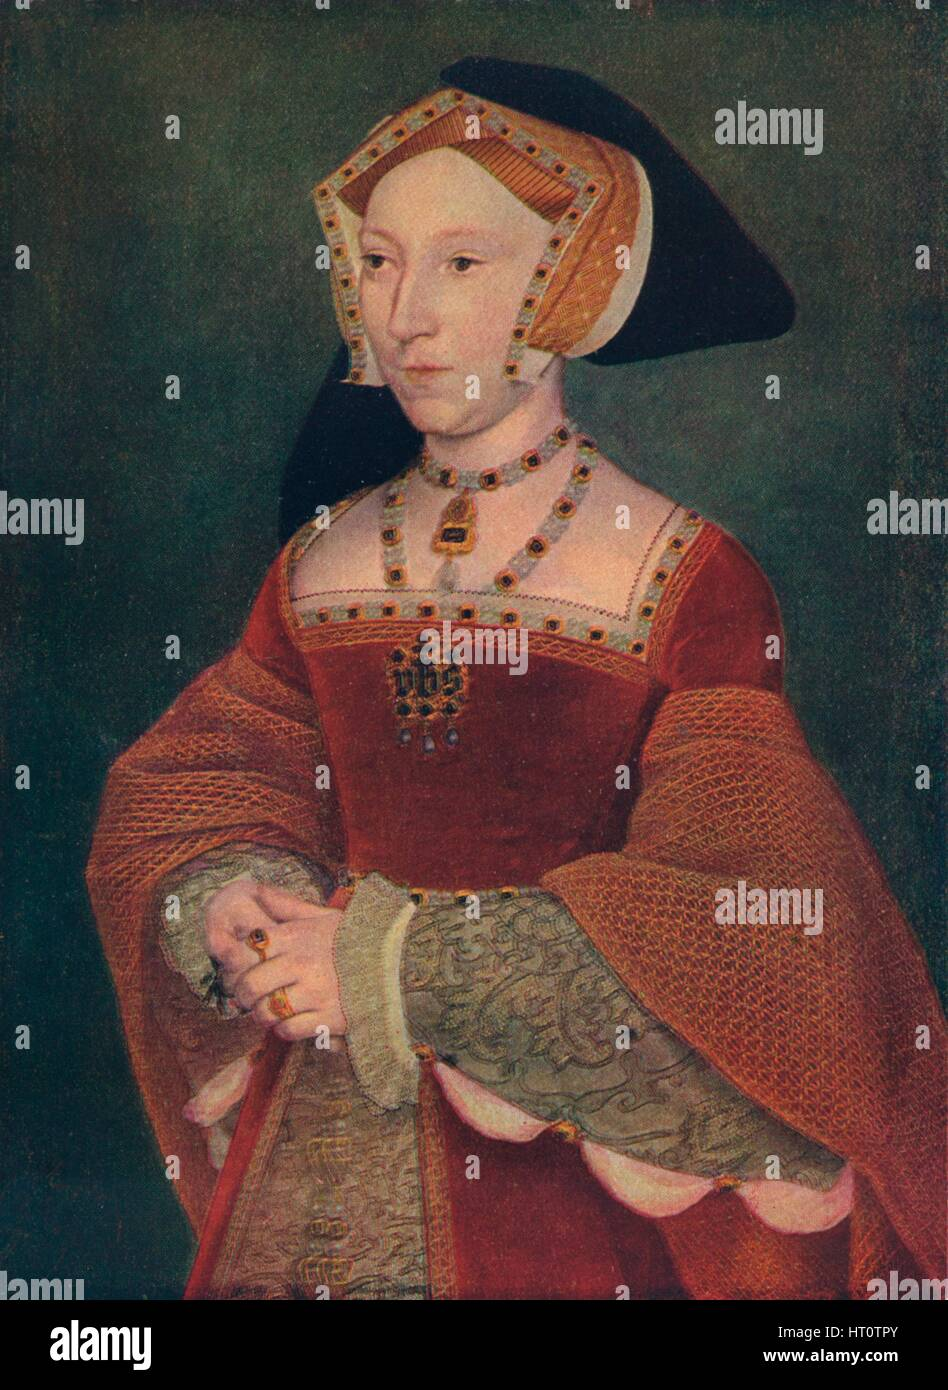 'Jane Seymour', 1537. Artist: Hans Holbein the Younger. - Stock Image